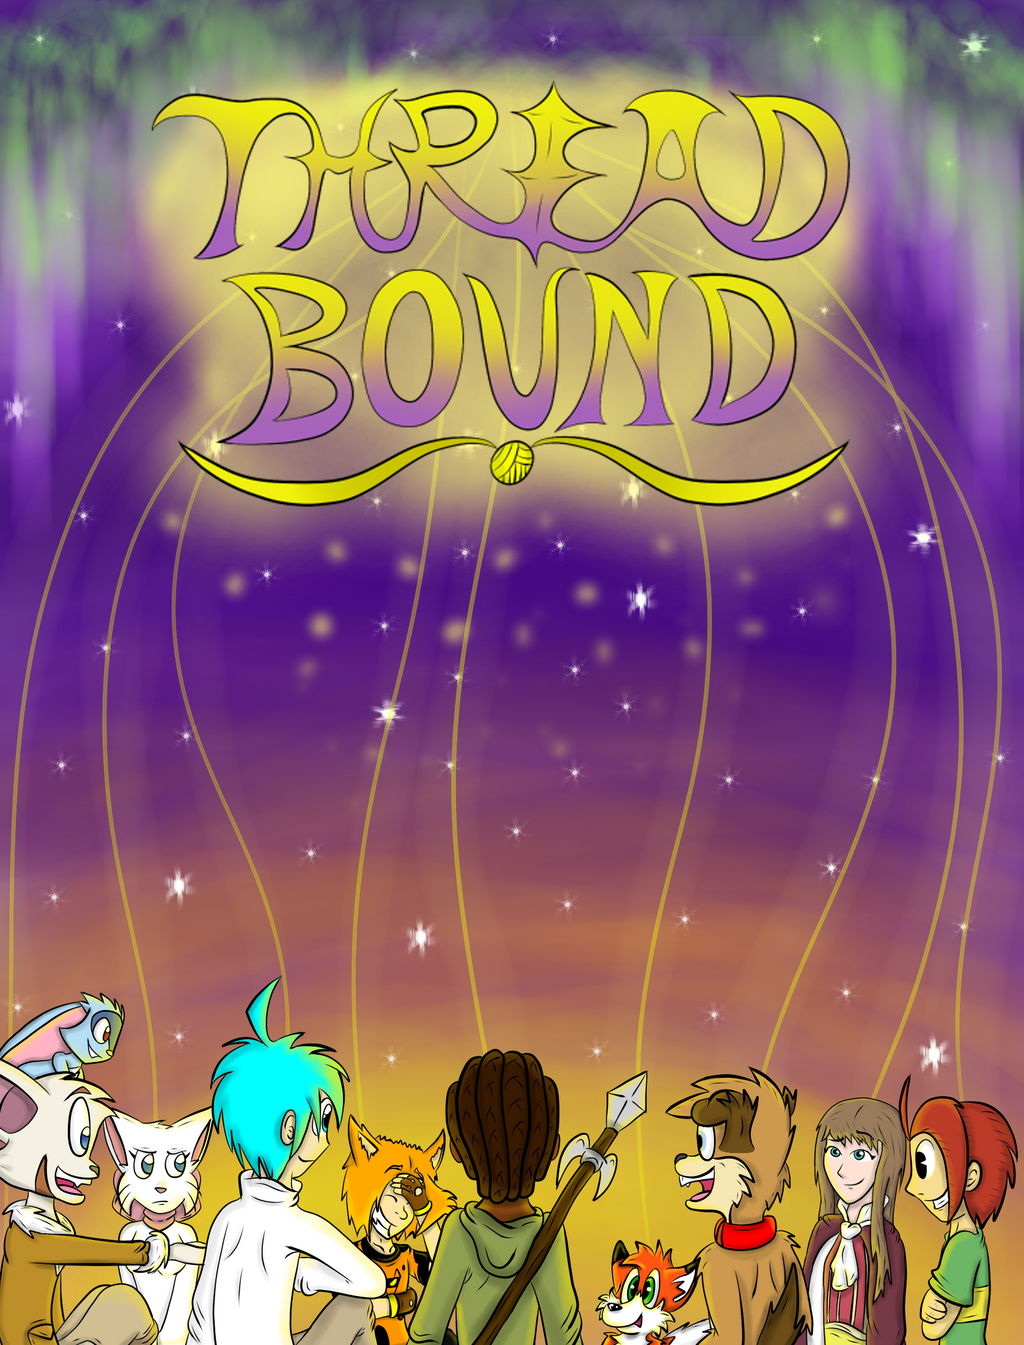 Thread Bound by CHAOKOCartoons